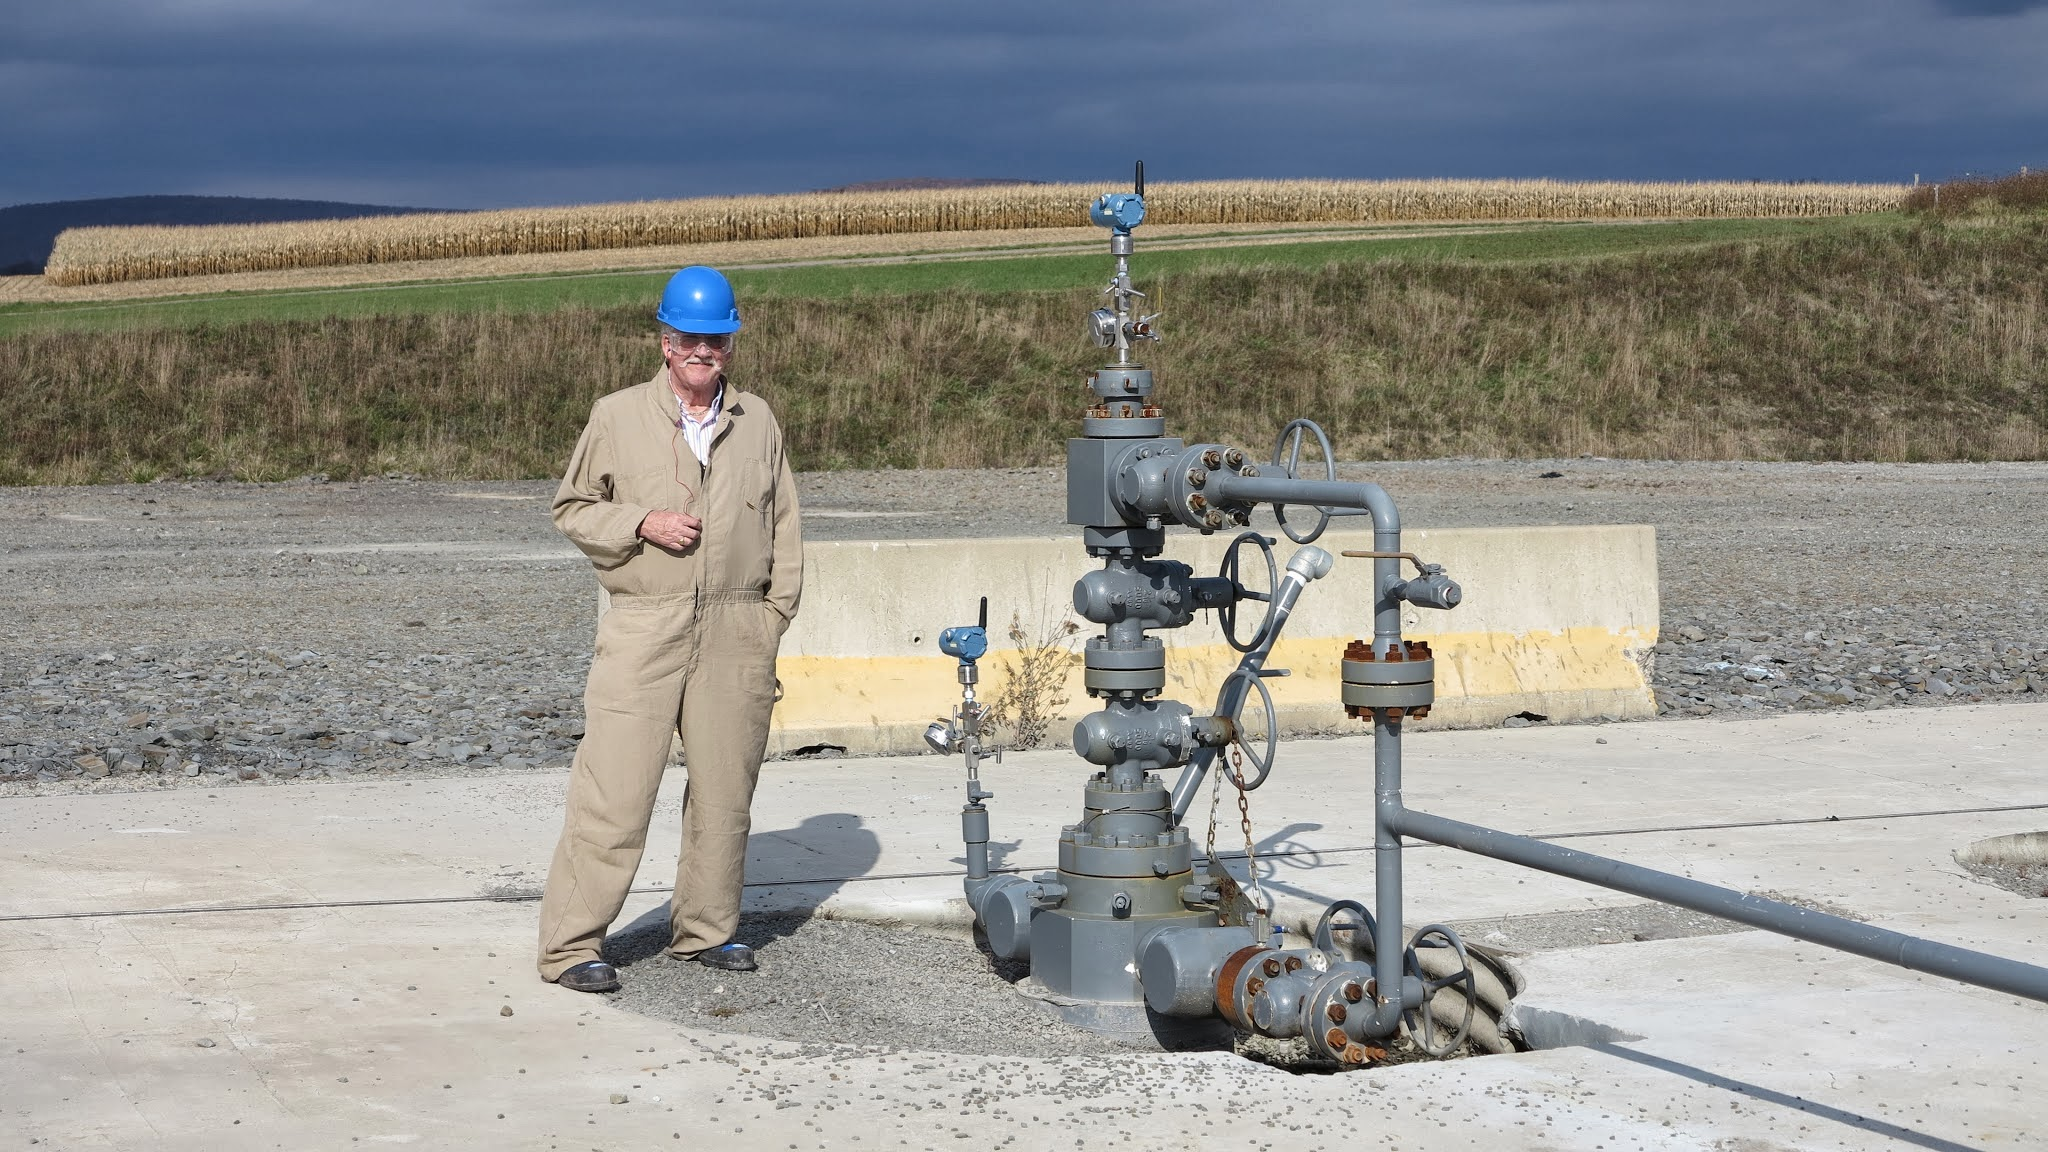 In the small town of Mansfield PA, on the great Marcellus shale field